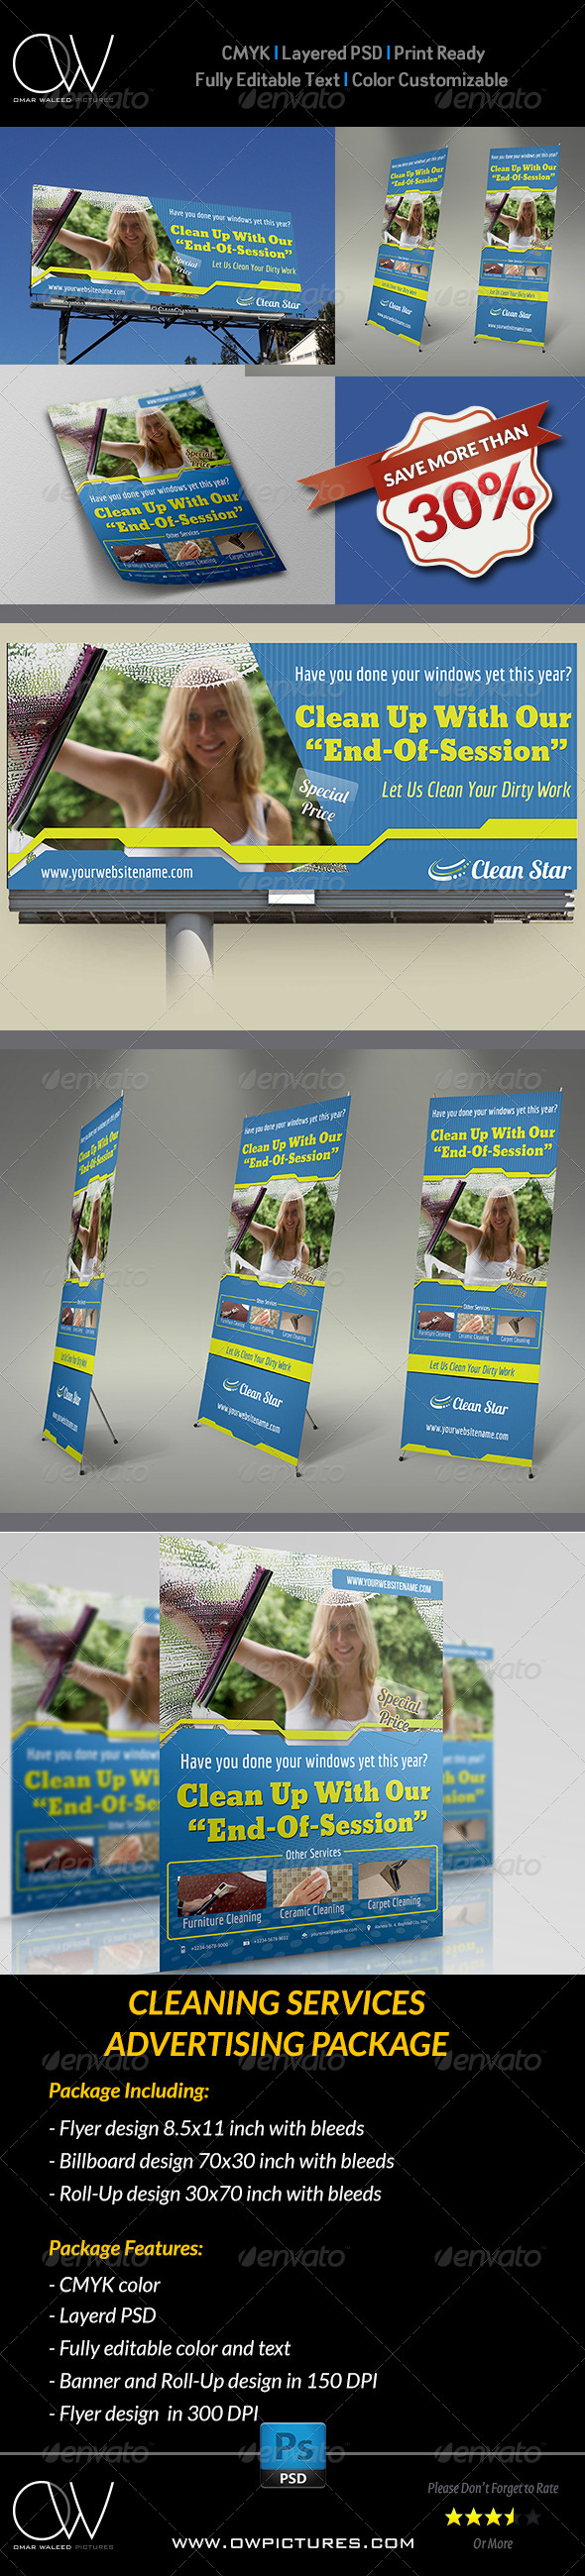 cleaning services advertising bundle advertising cleaning cleaning services advertising bundle signage print templates